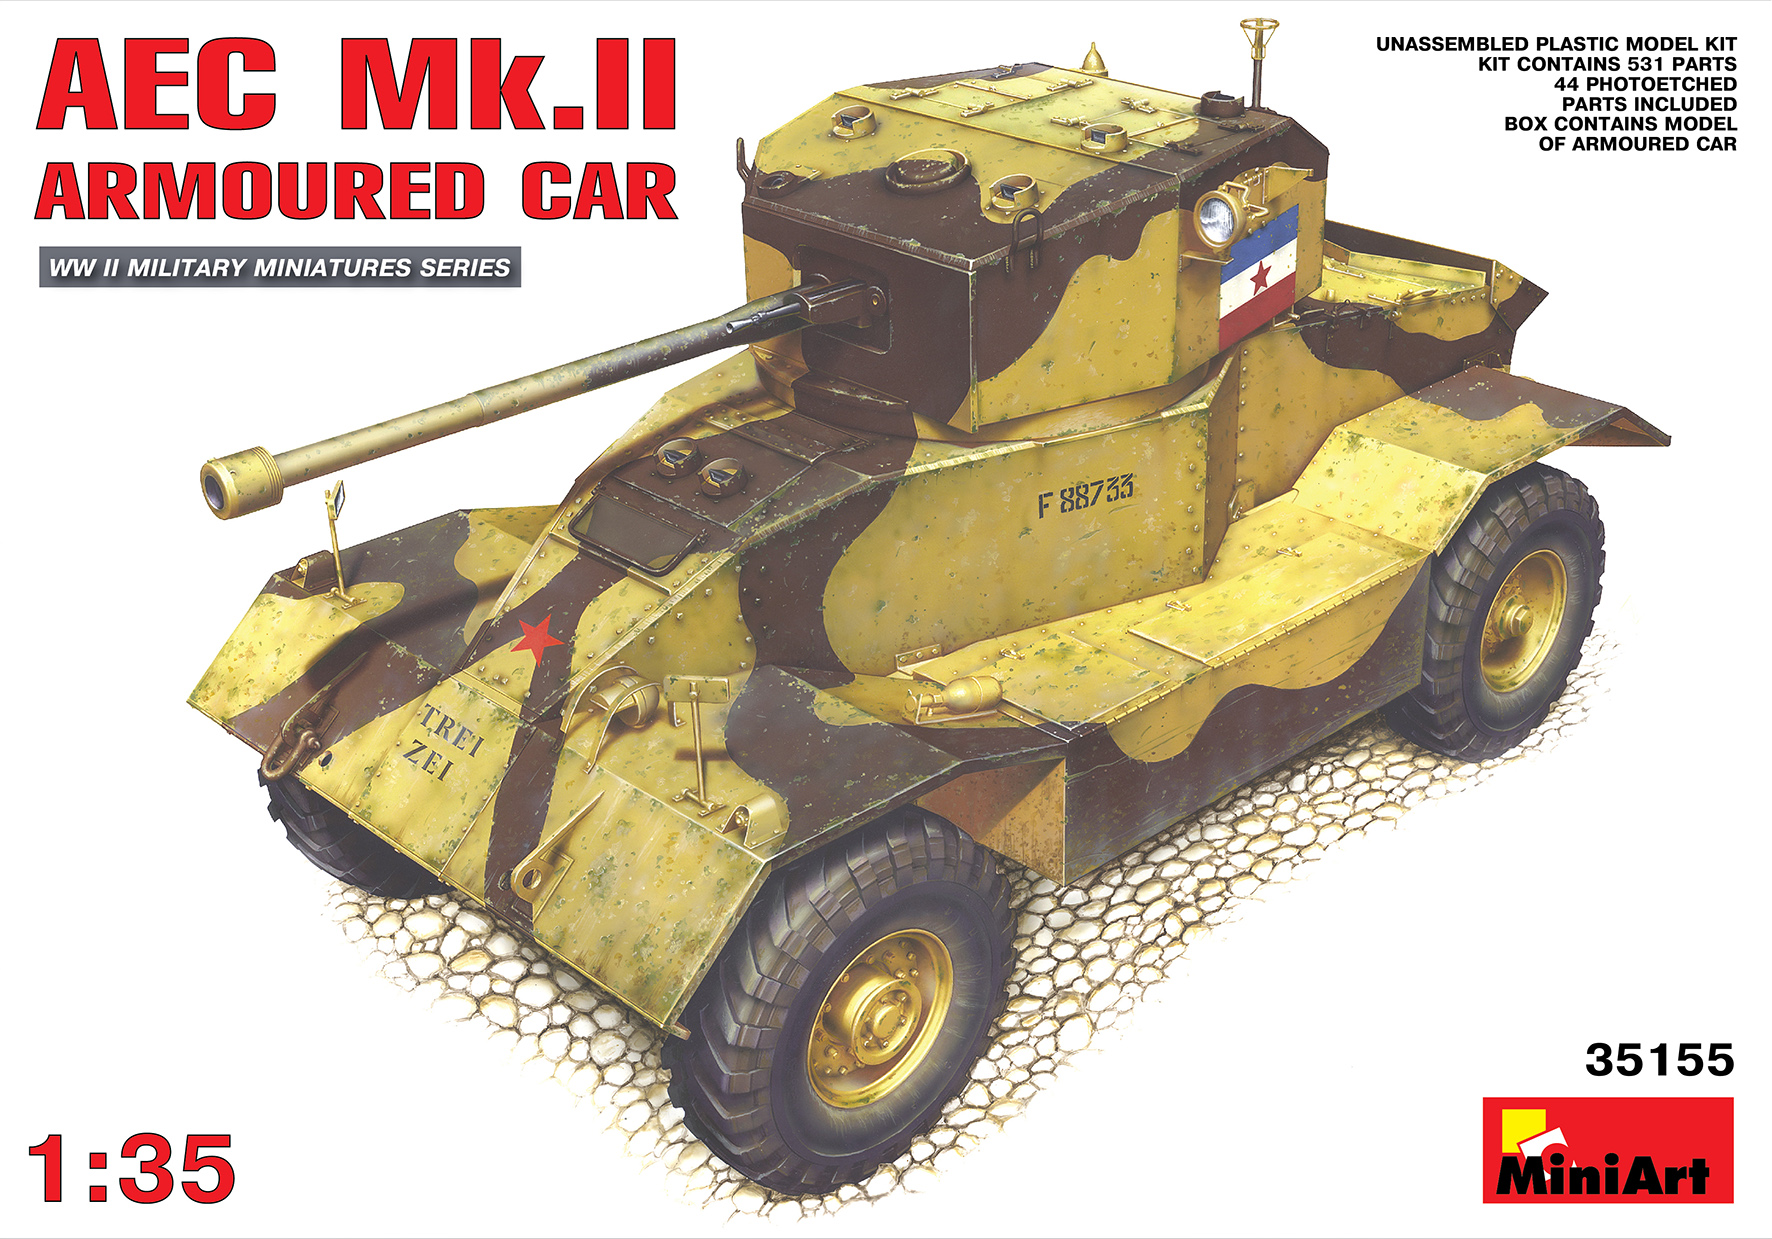 35155 AEC Mk.II ARMOURED CAR